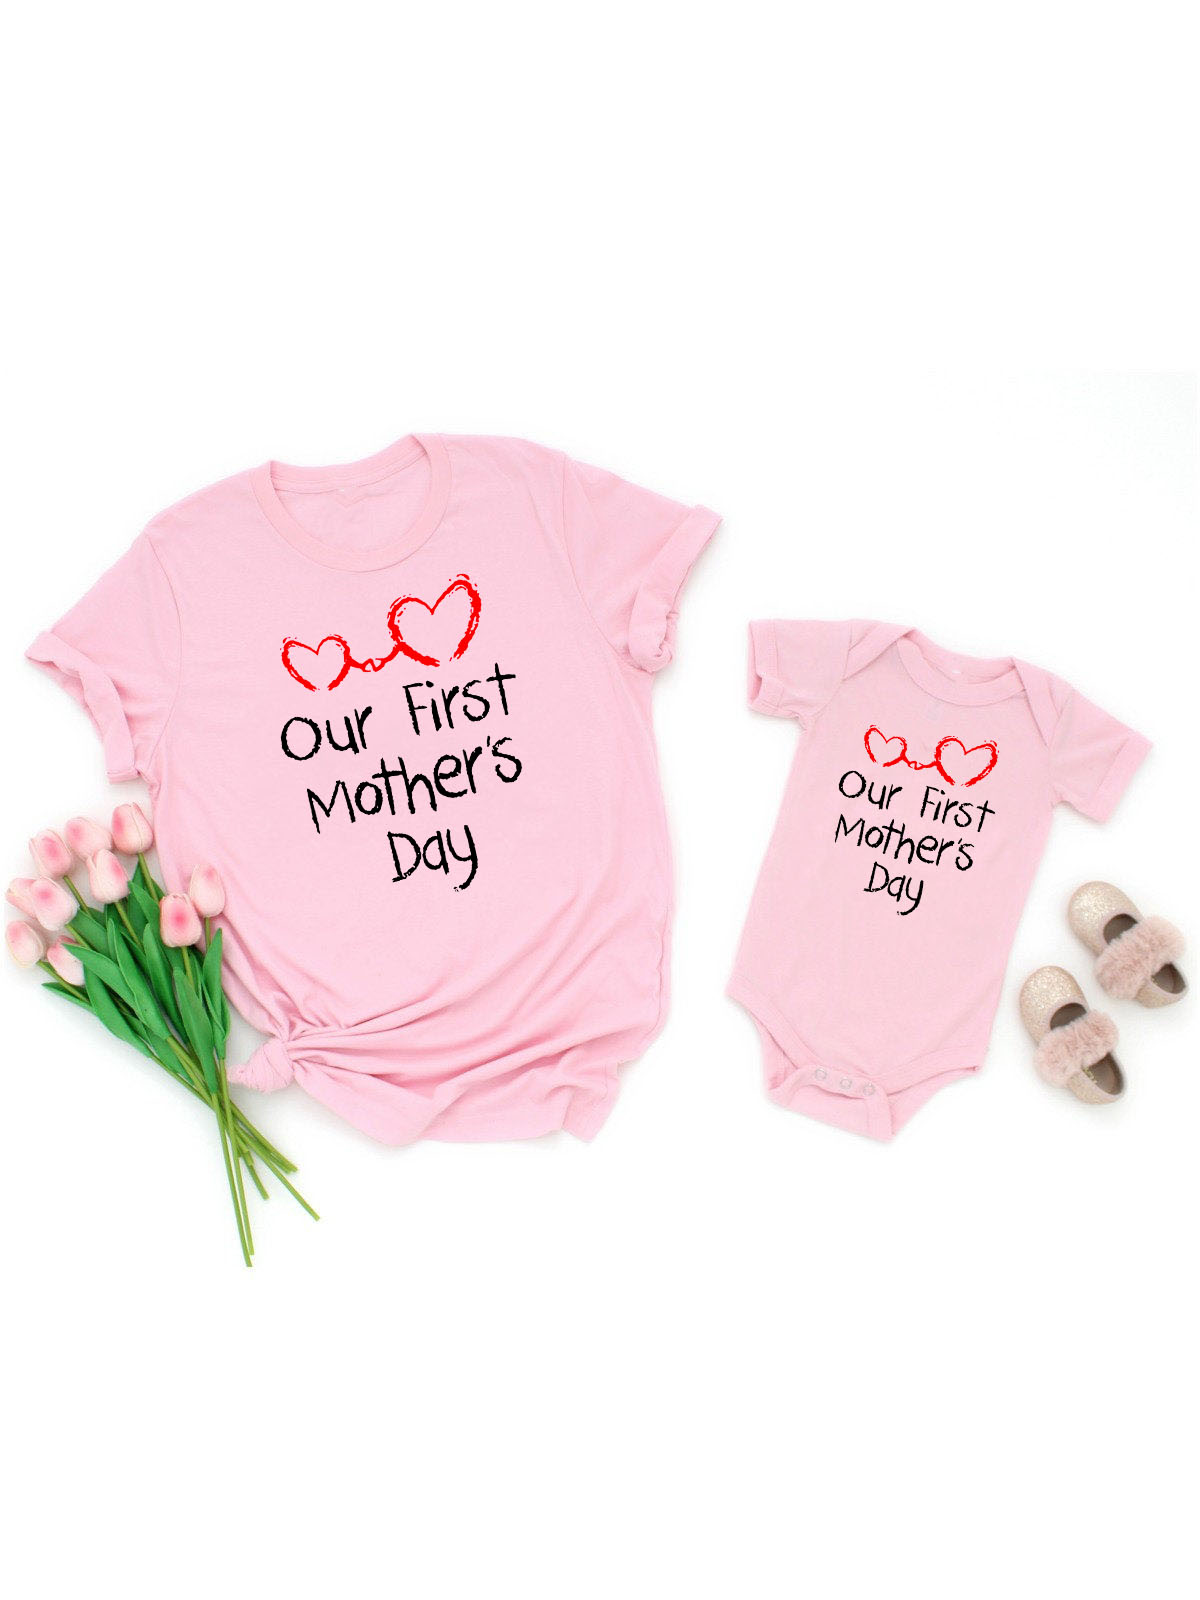 Our First Mother's Day tops Mom & Baby Matching tees Bodysuit & Women Shirt short sleeve family matching outfits